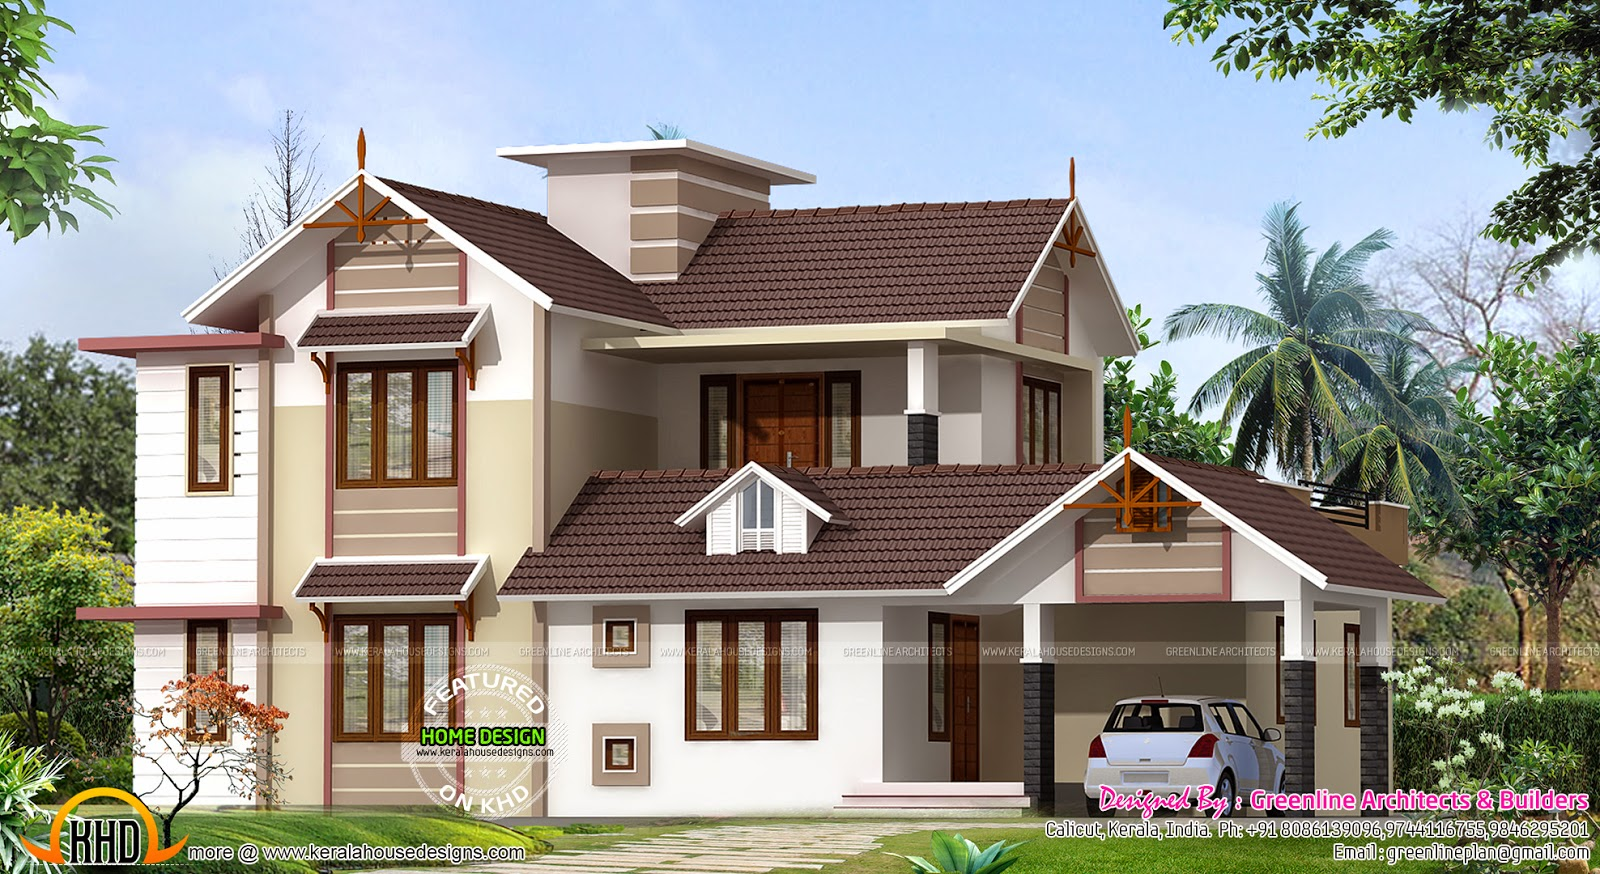 2400 sq ft new house design kerala home design and floor for New house design photos